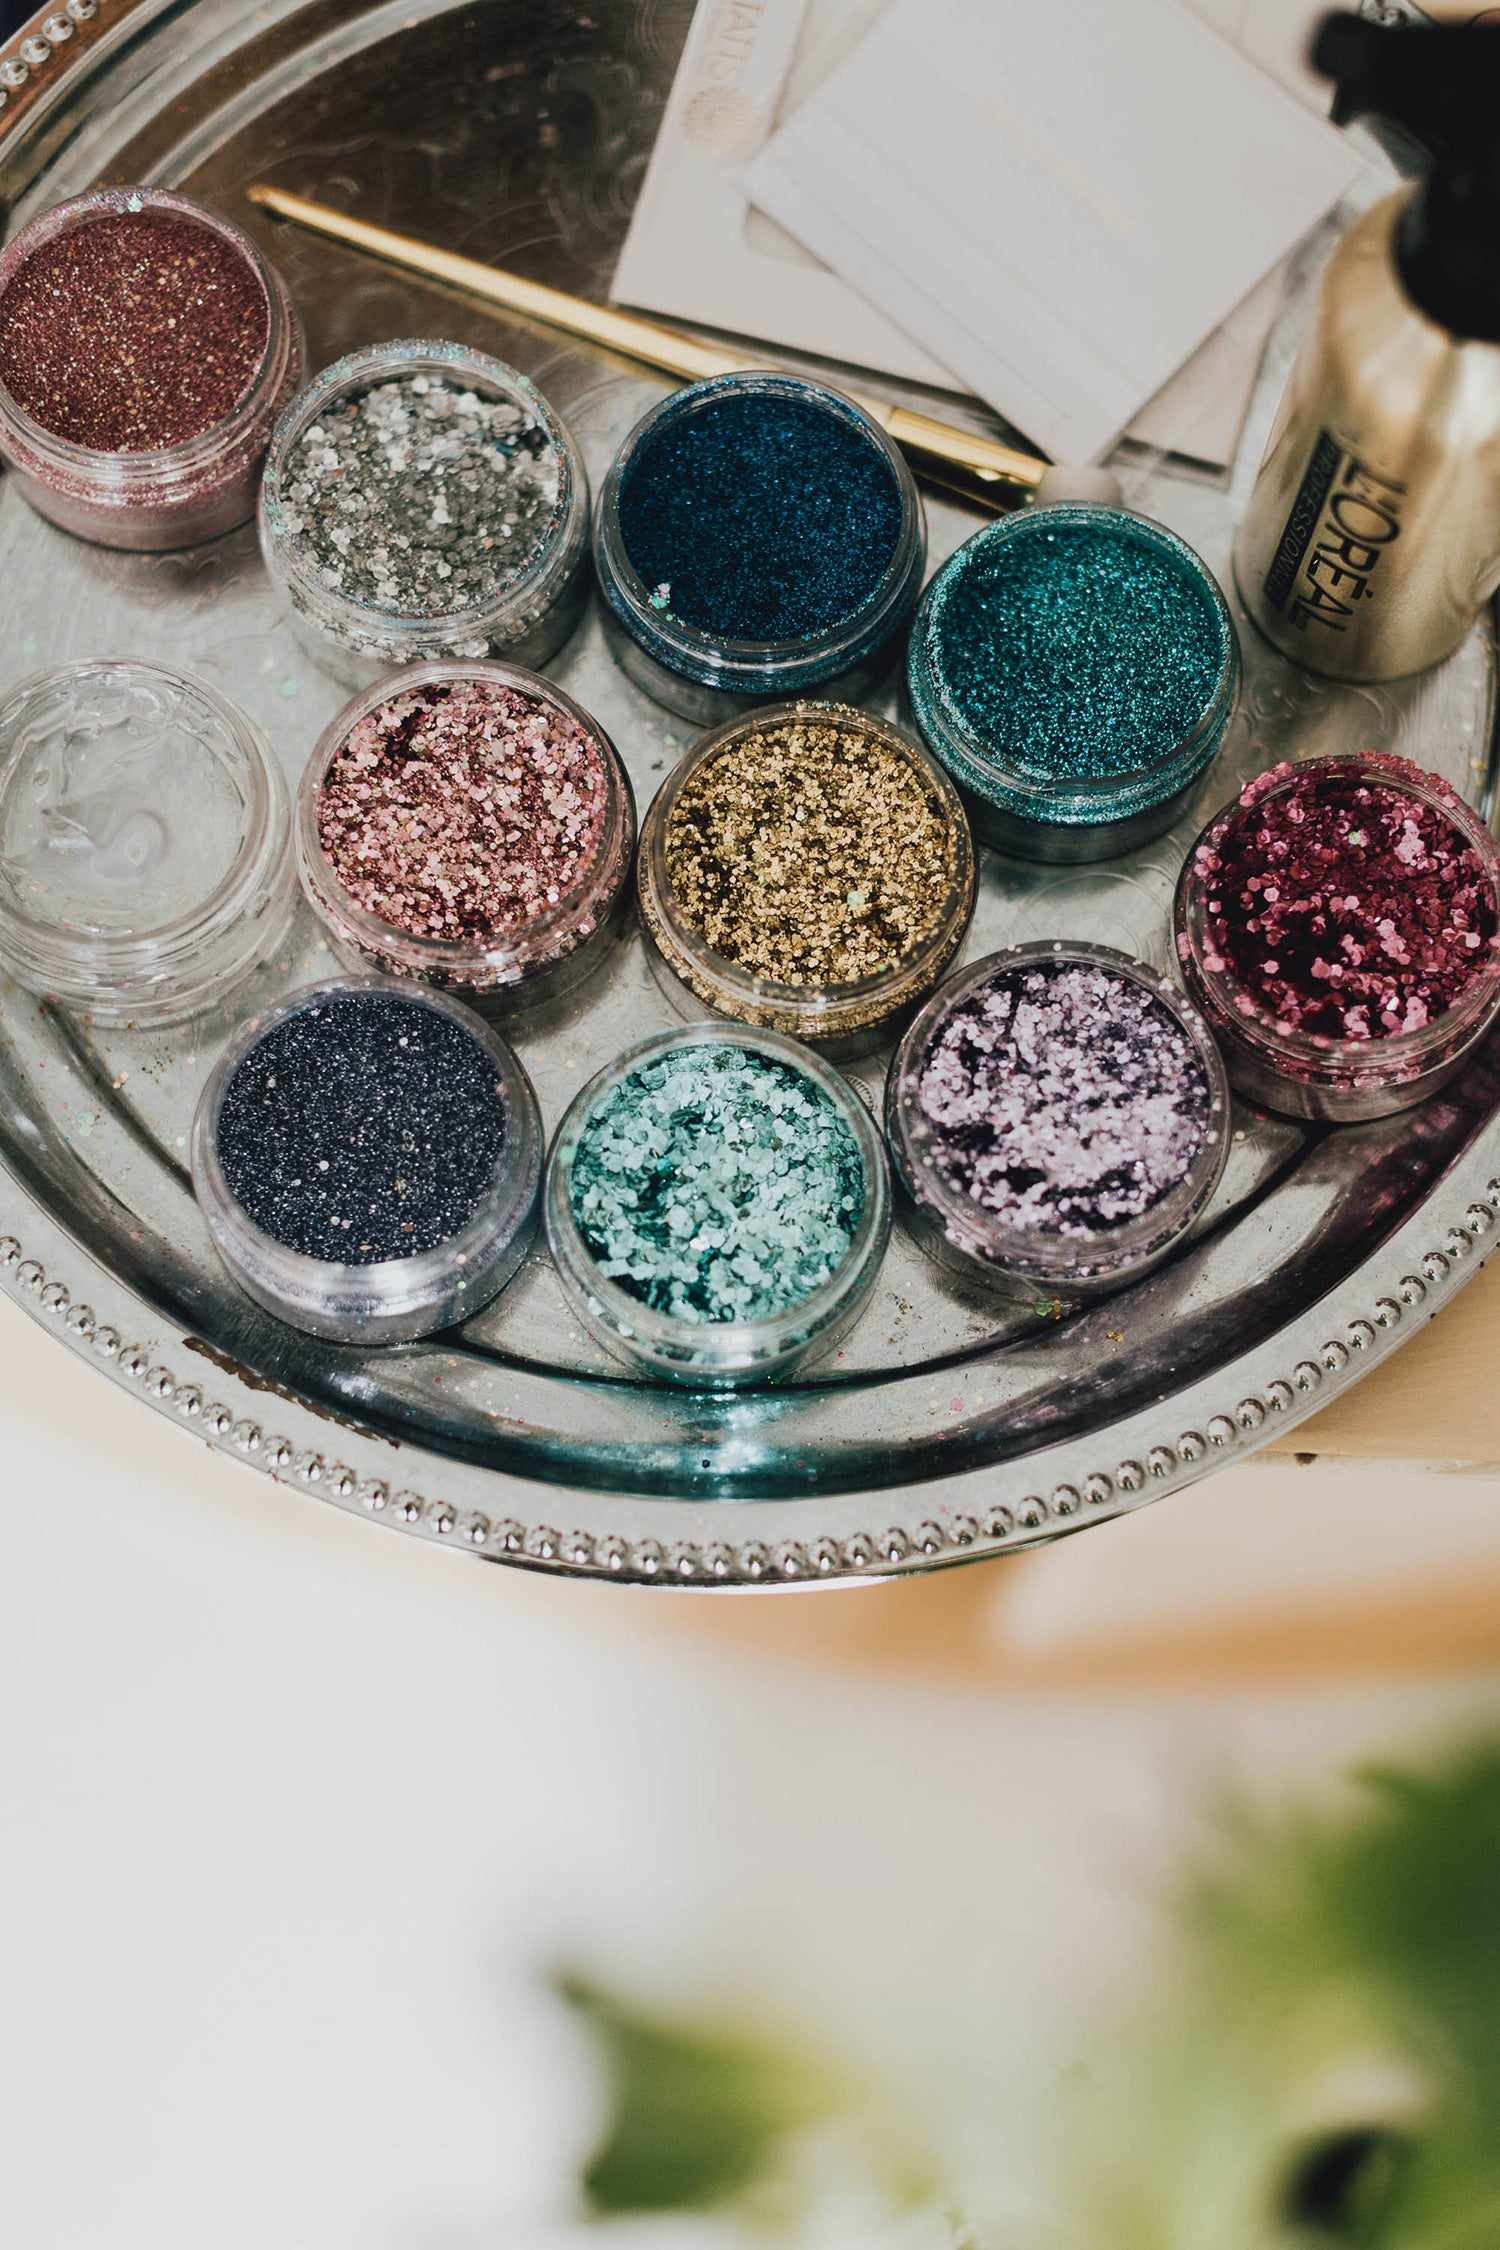 Bio-degradable glitter by Glo Tatts